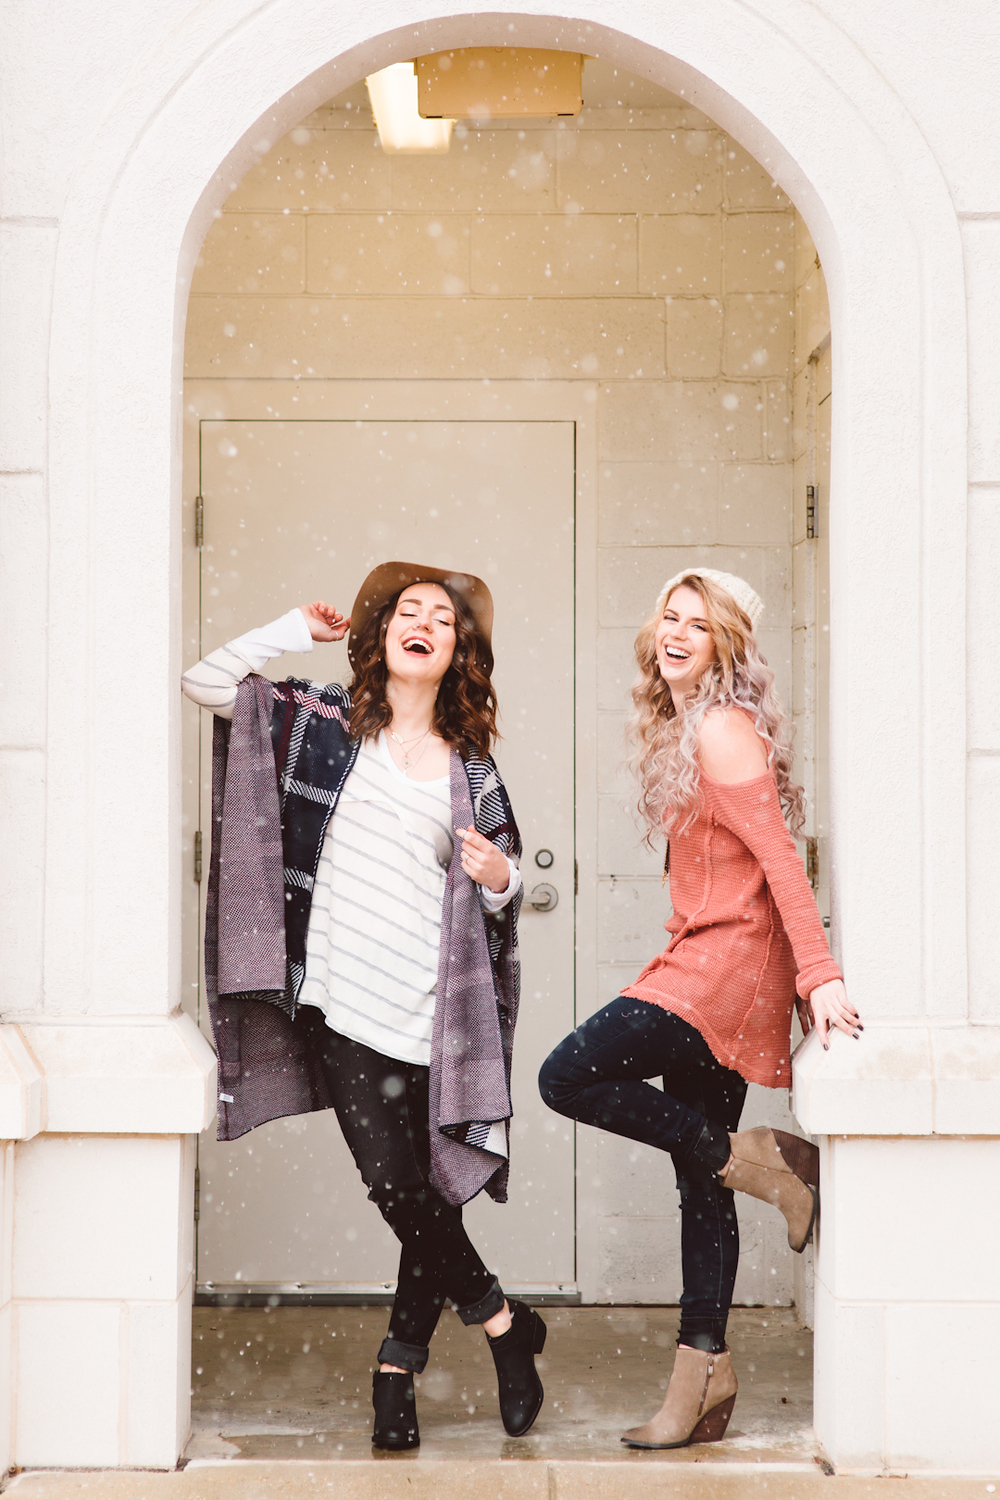 snowy-winter-look-book-the-boutique-at-body-wellness-boho-fashion-maryland-brooke-michelle-photography-50.jpg